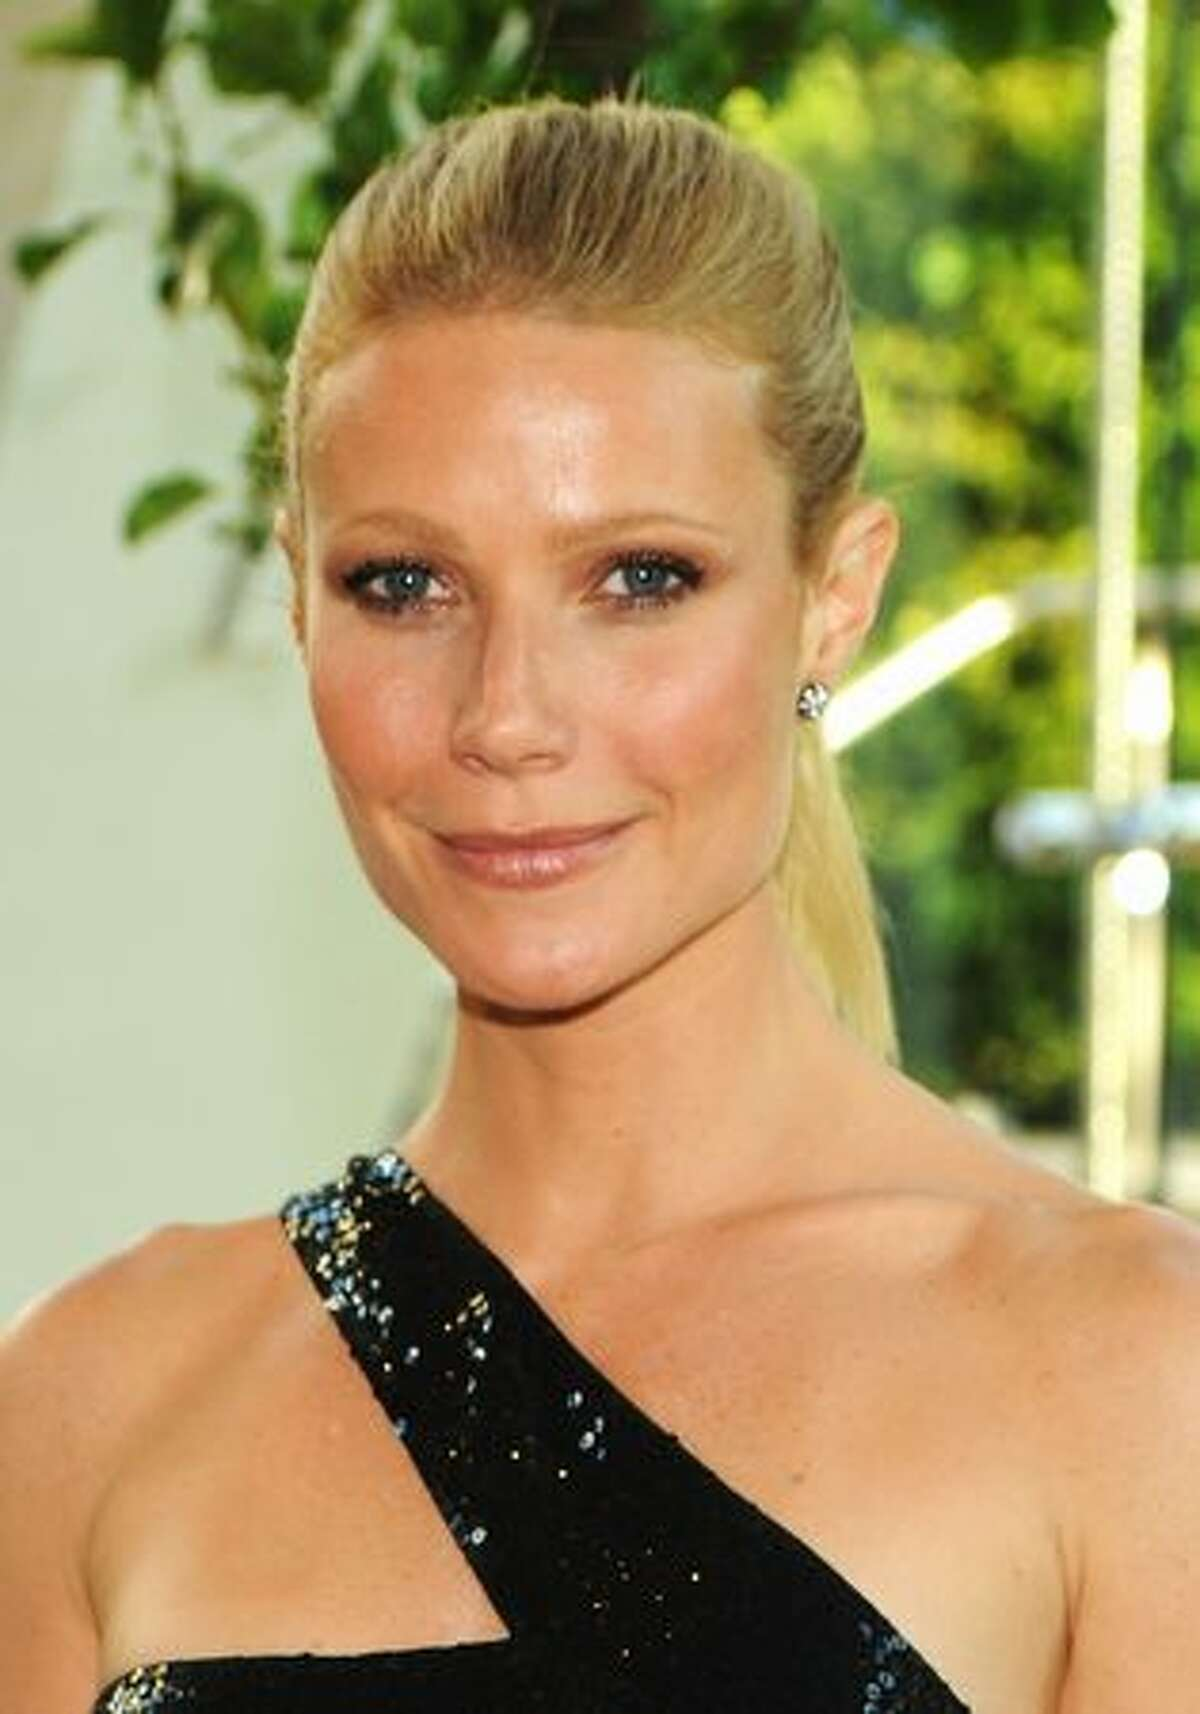 Actress Gwyneth Paltrow attends the 2010 Council of Fashion Designers of America Awards at Alice Tully Hall, Lincoln Center in New York on Monday, June 7, 2010.